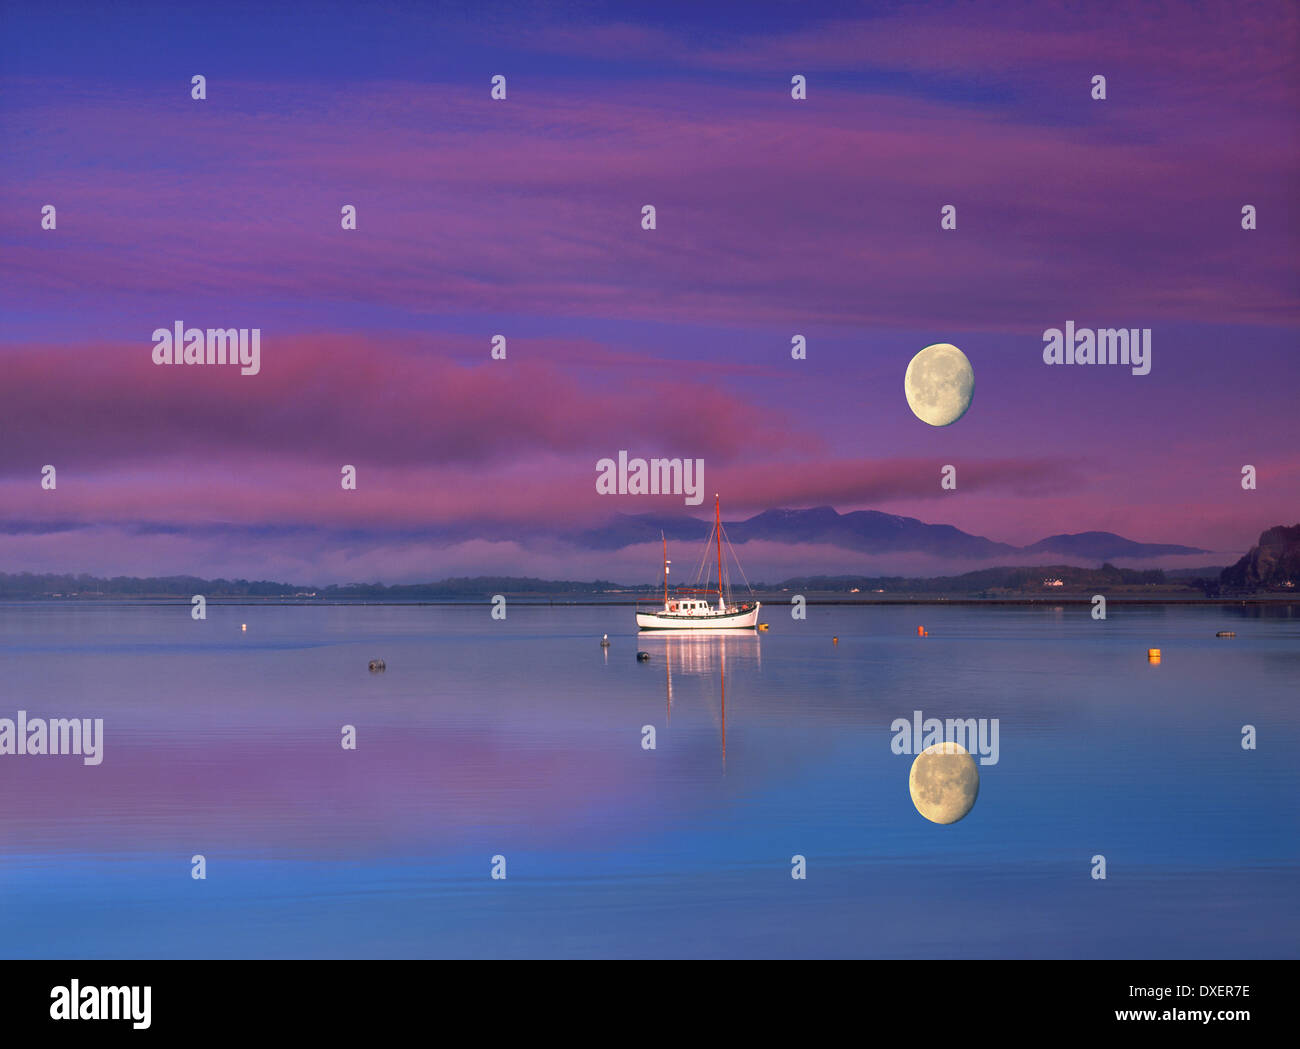 Moonrise and sunset over ardmuchnish bay by connel,argyll. - Stock Image